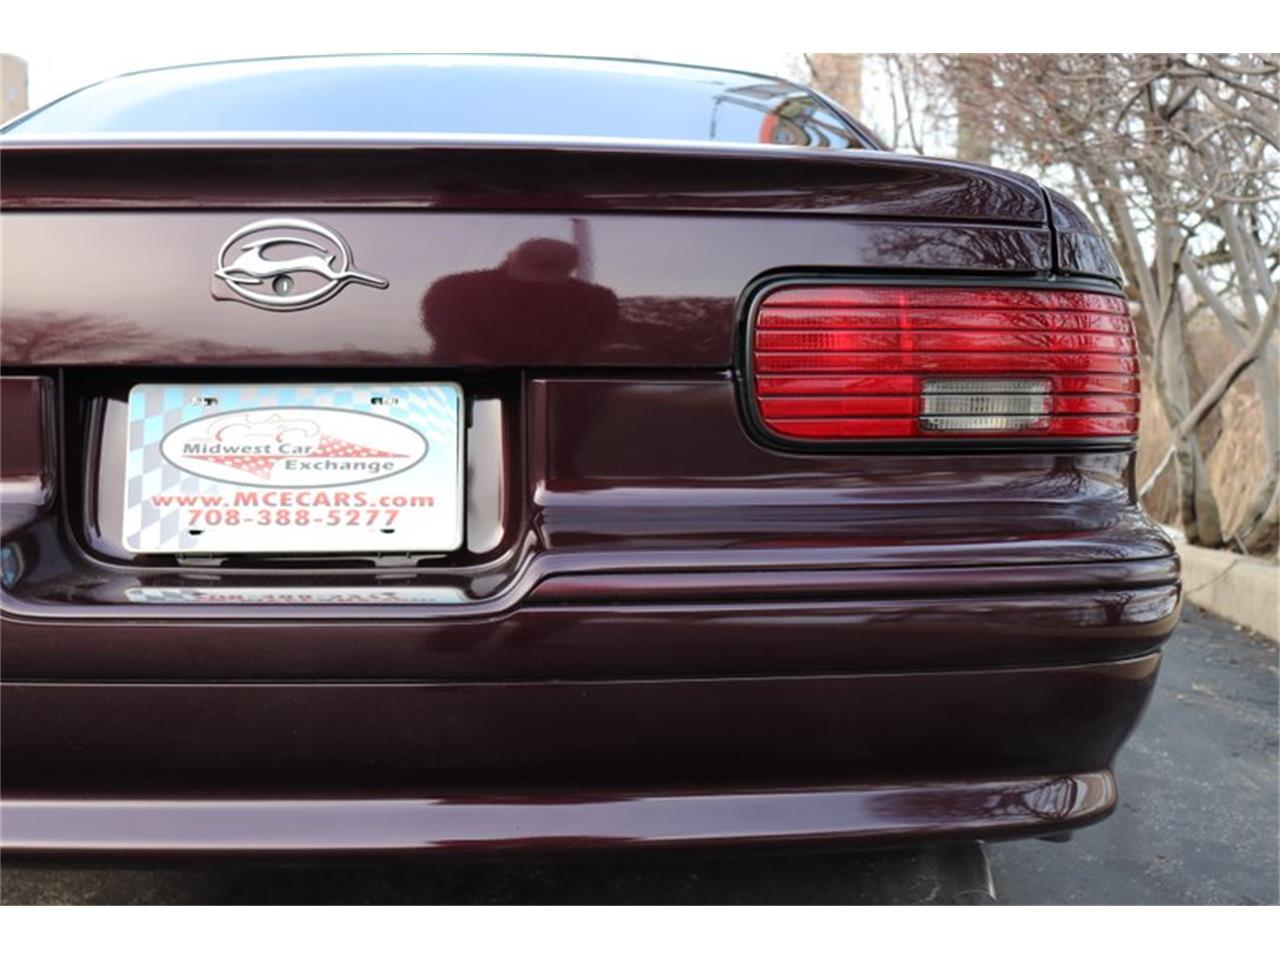 Large Picture of 1996 Chevrolet Impala located in Illinois Offered by Midwest Car Exchange - P1PX